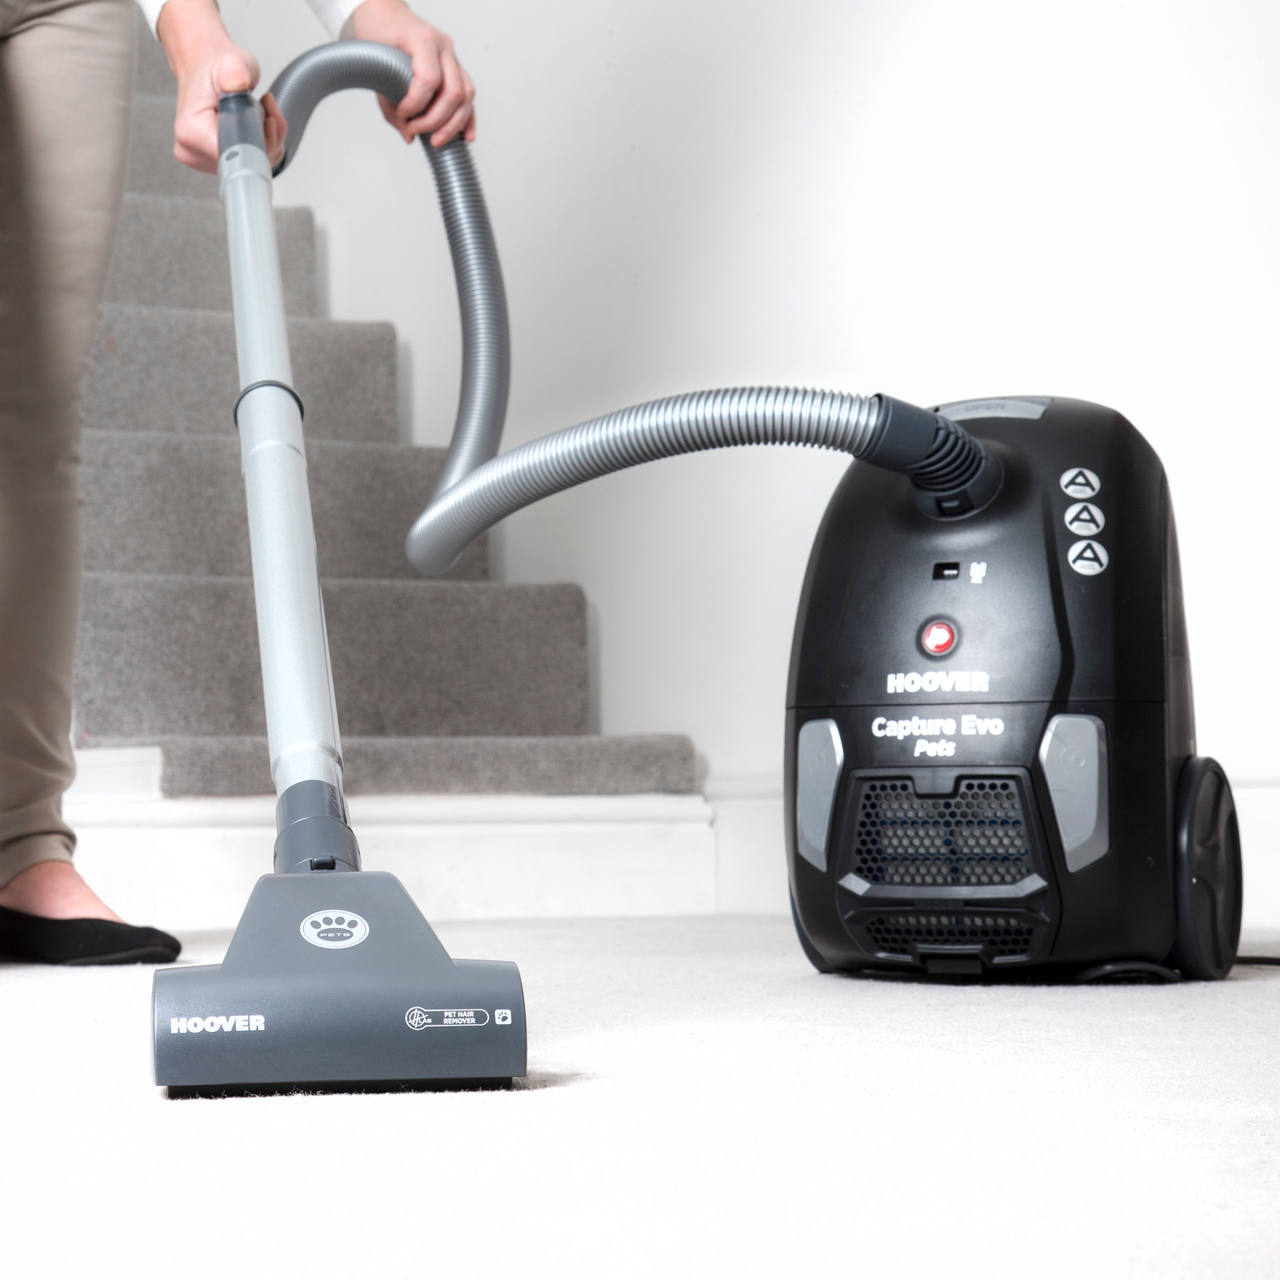 Details about Hoover BV71 Capture Pets Cylinder Vacuum Cleaner Bagged Pet  Hair Removal 1 Year